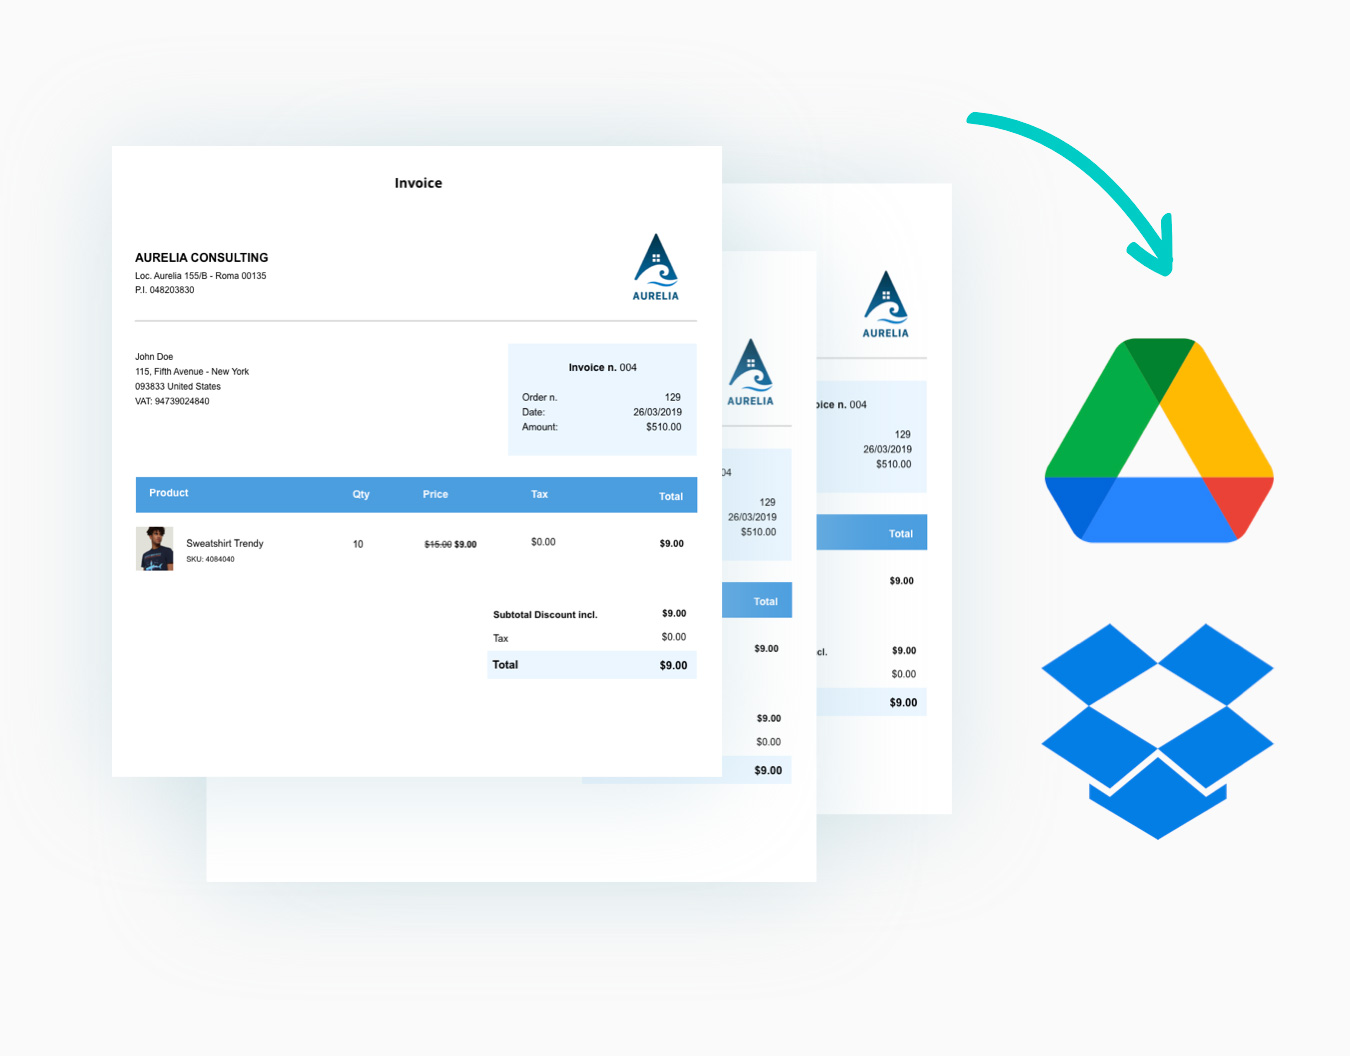 YITH-WooCommerce-PDF-Invoices-Packing-Slip-Upload-Invoices-Google-Drive-Dropbox